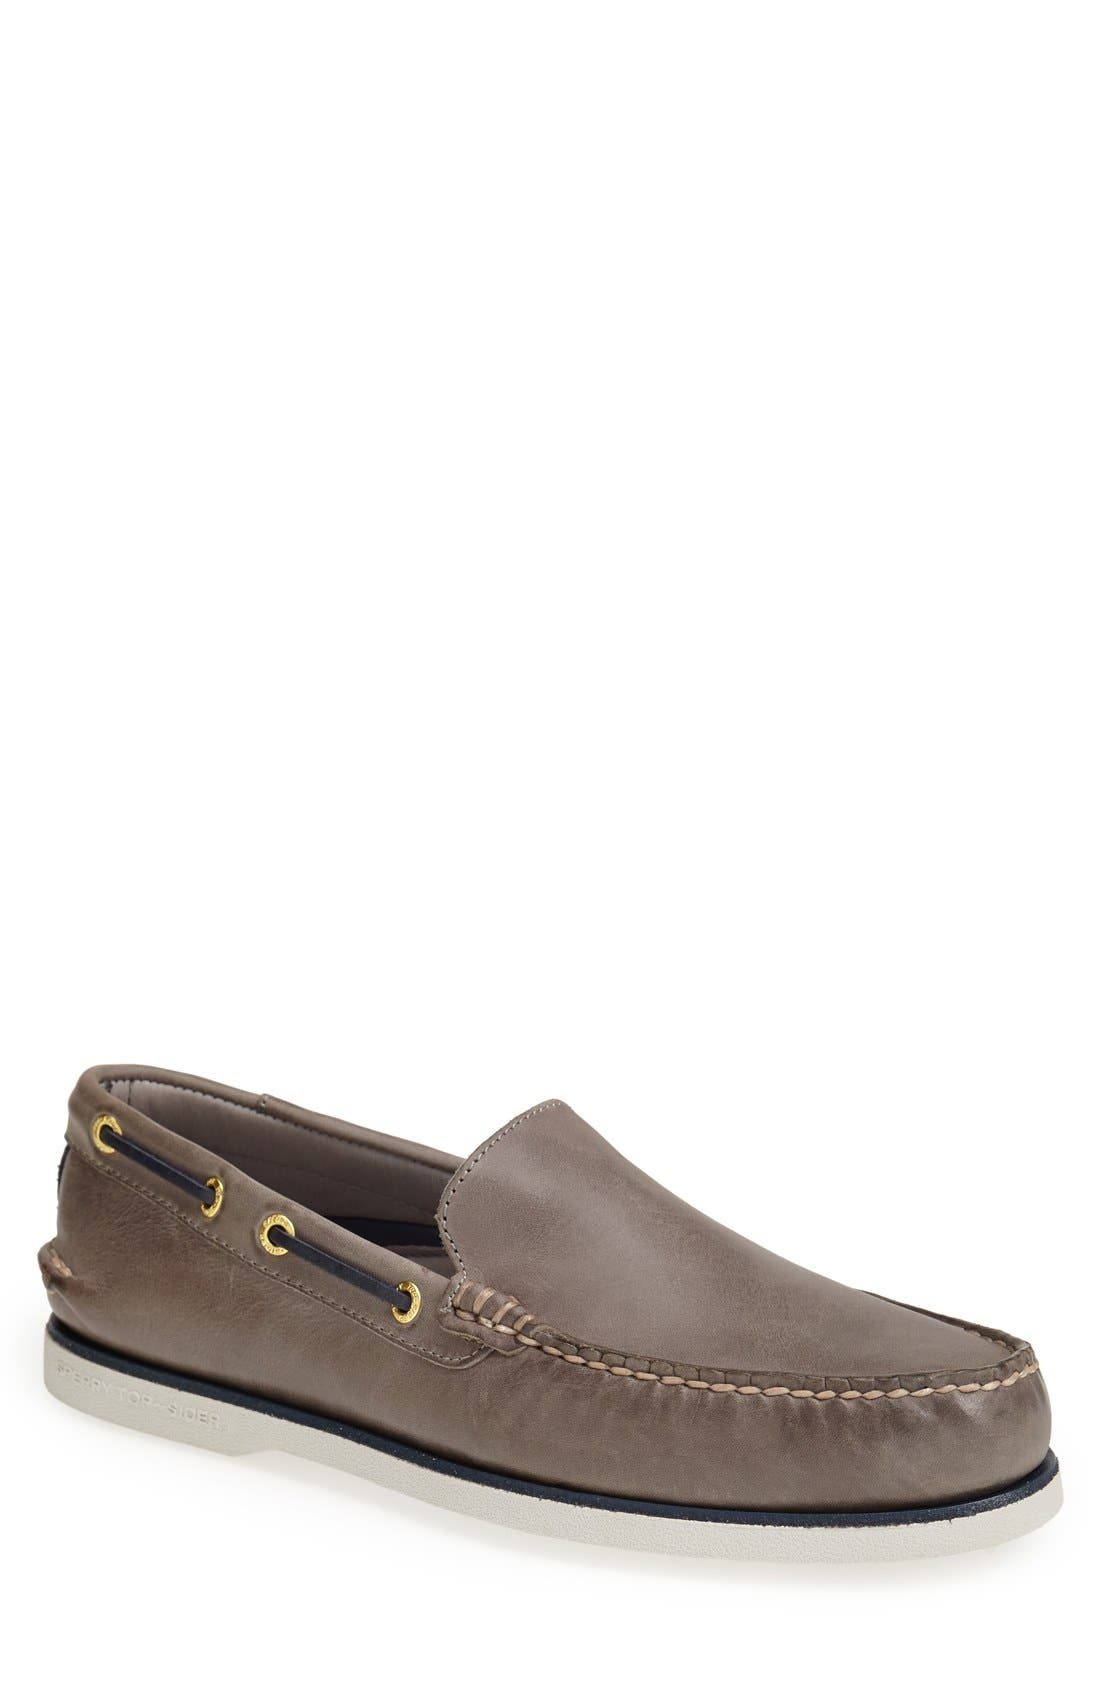 Top-Sider<sup>®</sup> 'Gold Cup - Authentic Original' Boat Shoe,                             Main thumbnail 1, color,                             020